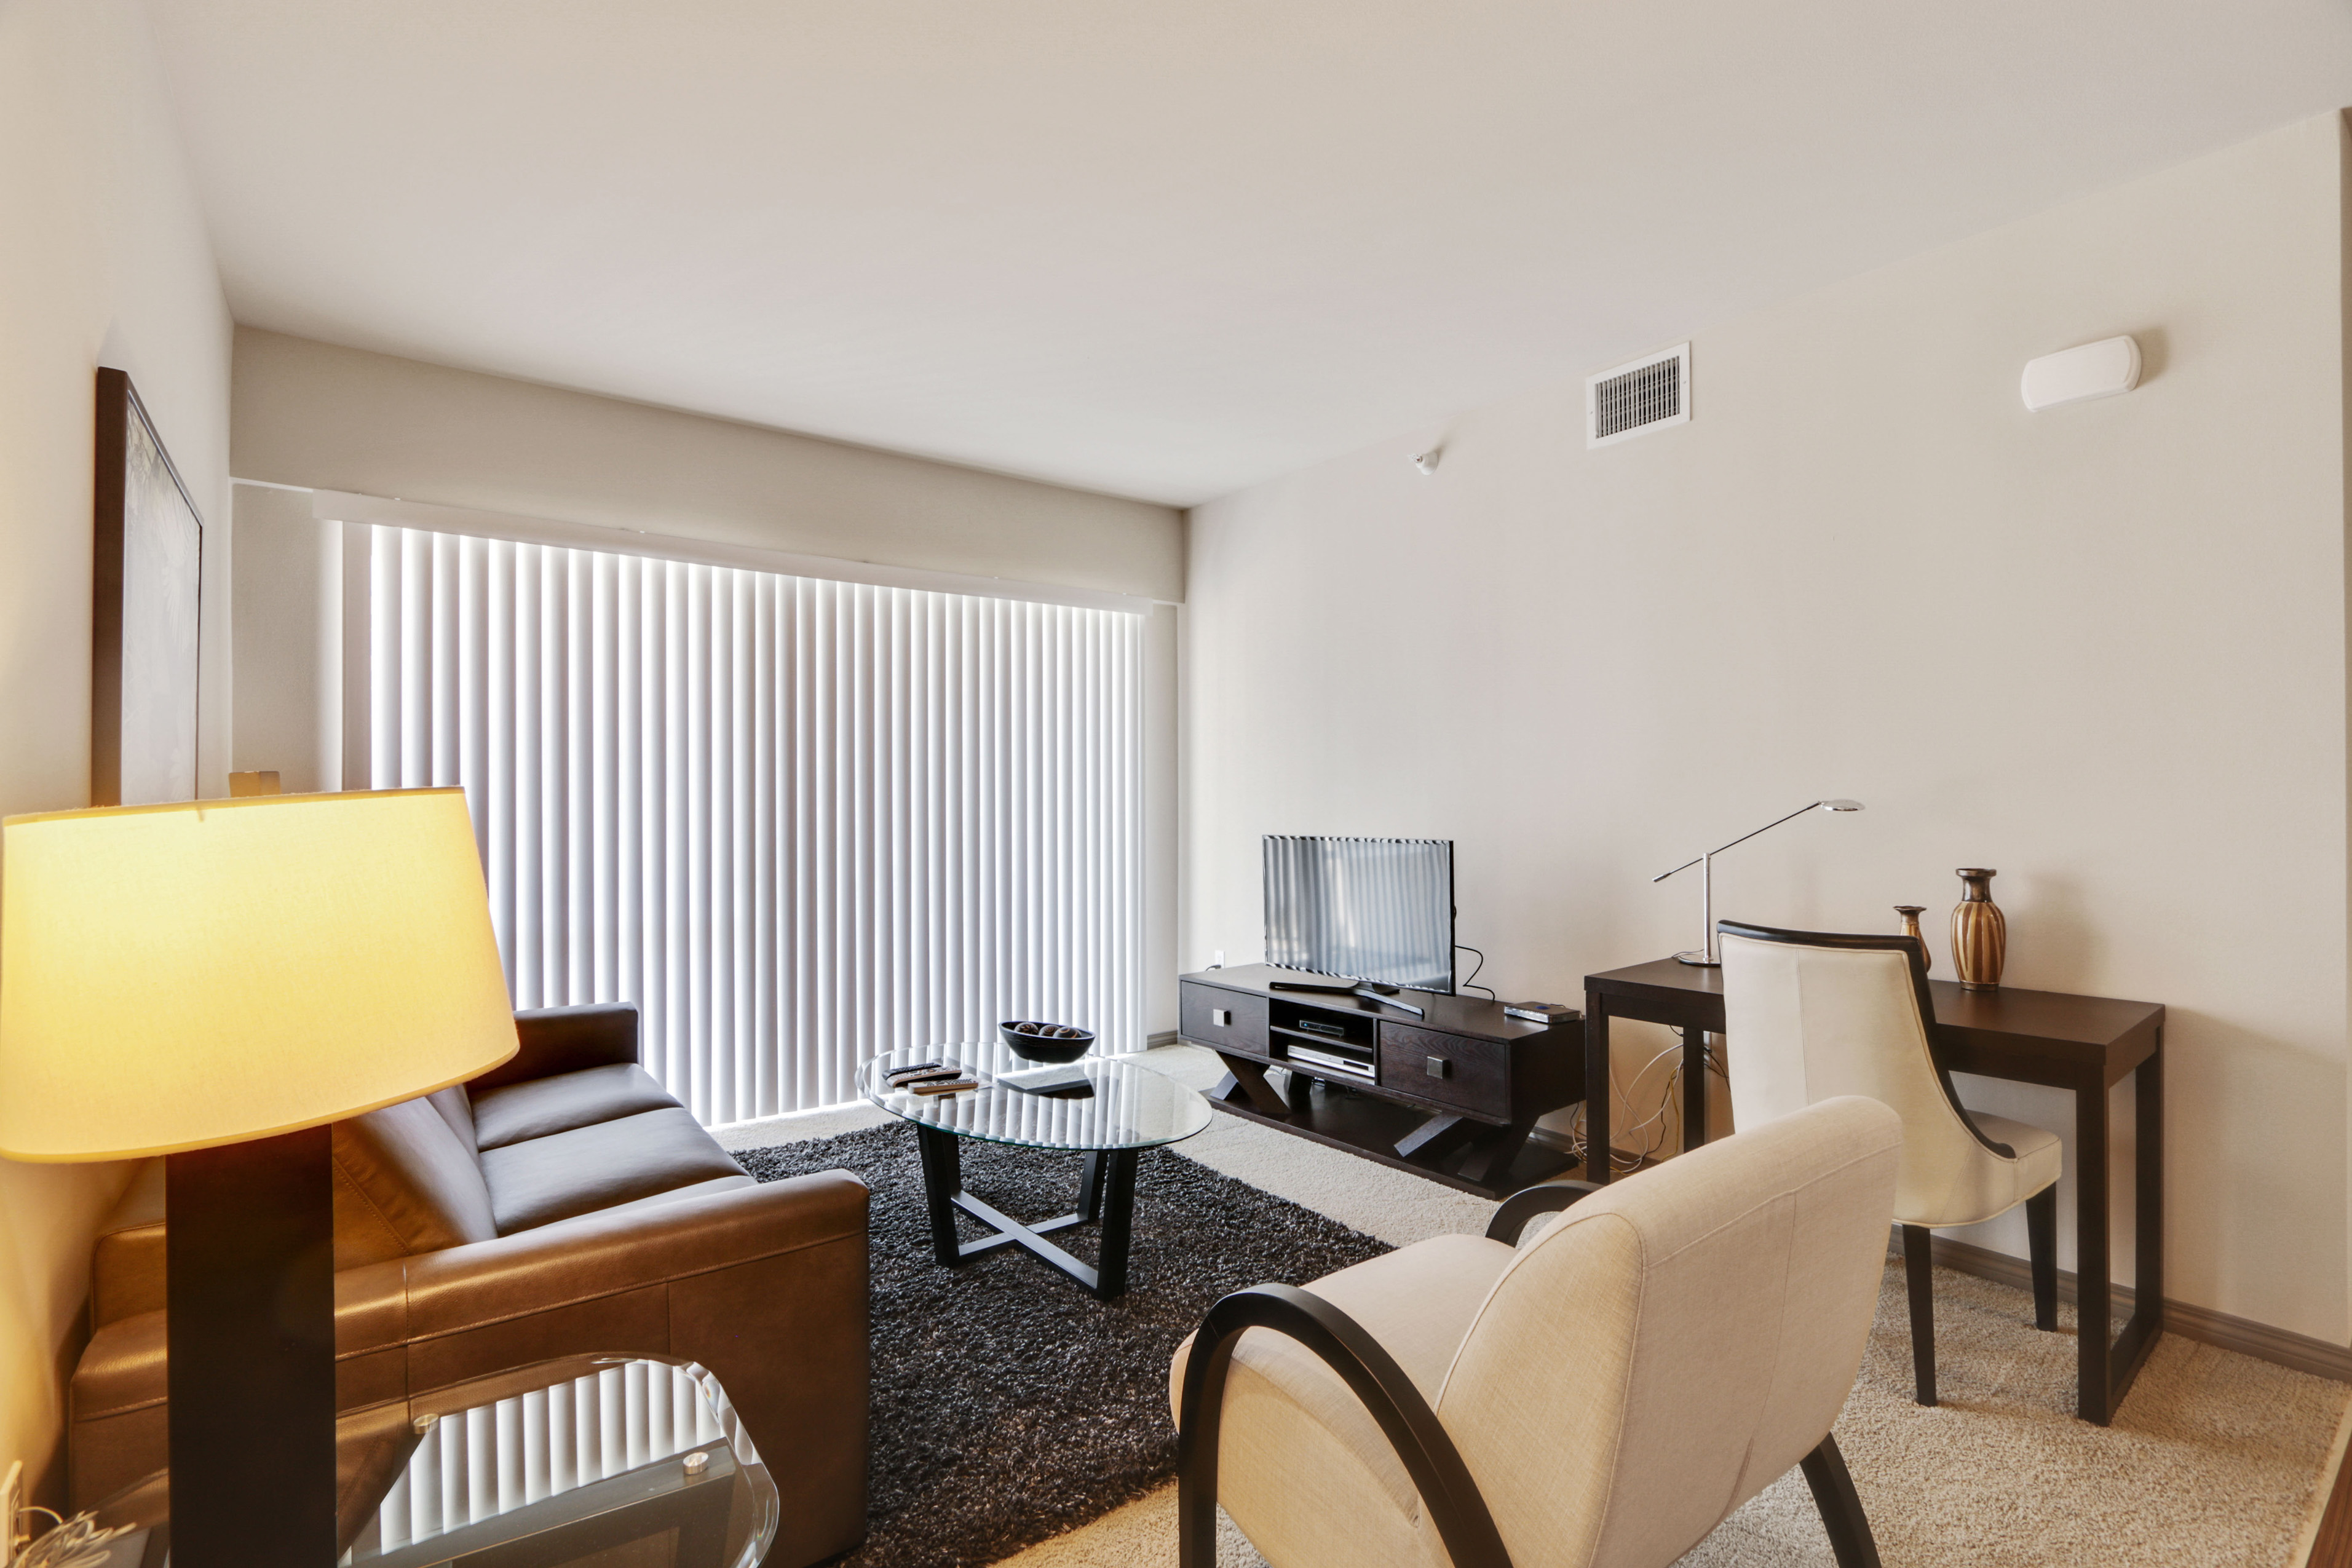 image 3 furnished 1 bedroom Apartment for rent in Marina del Rey, West Los Angeles